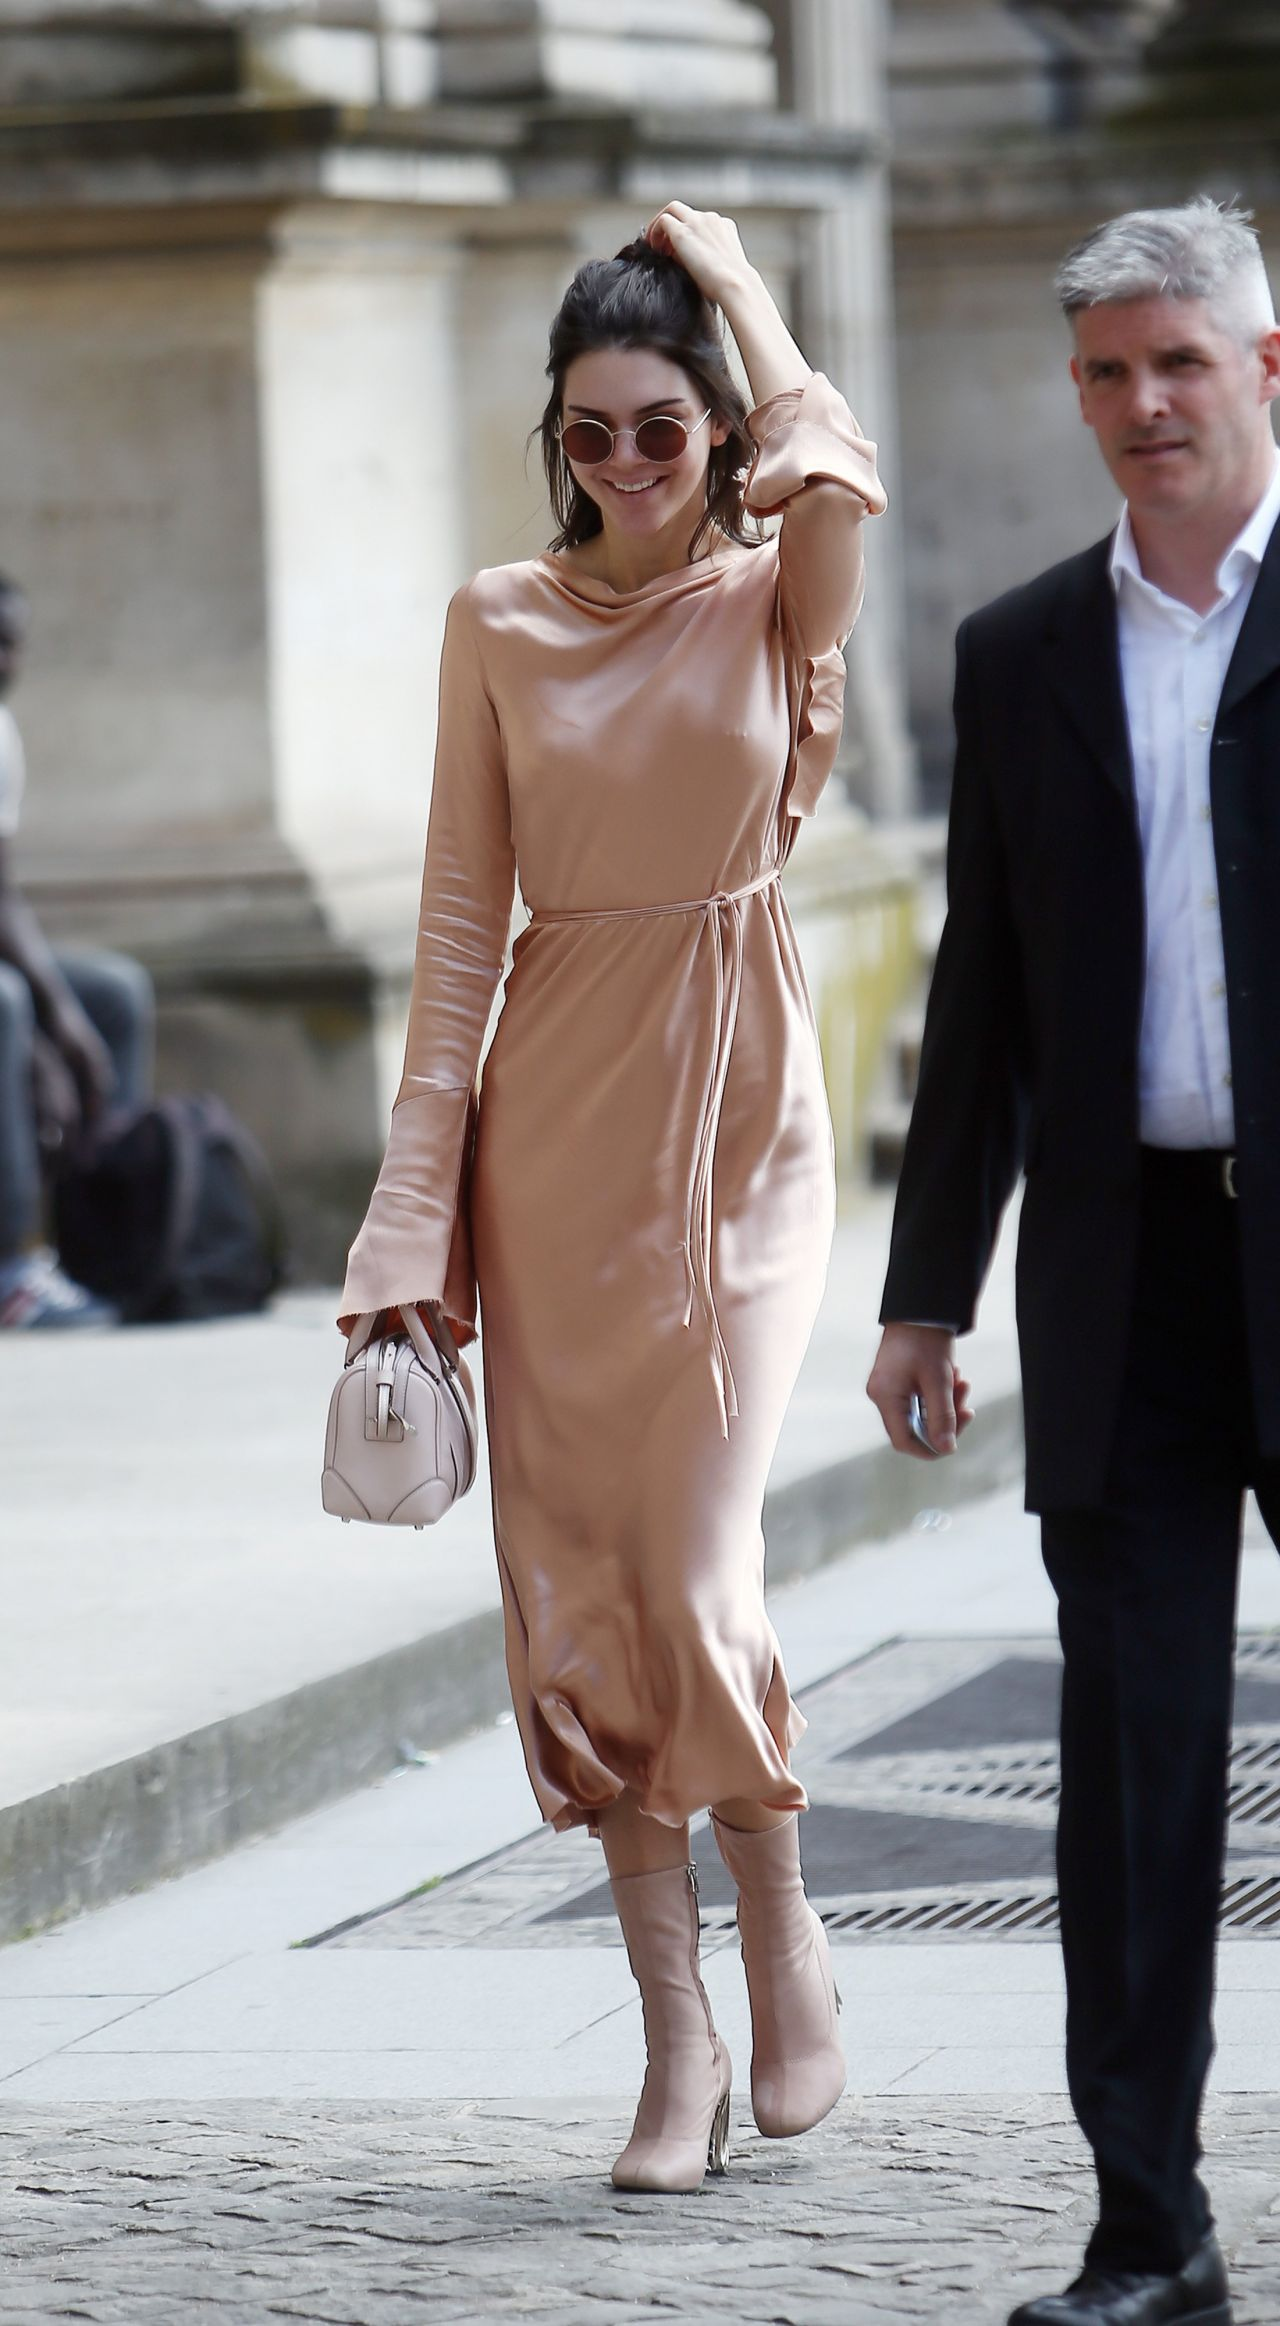 Kendall Jenner Classy Fashion Out In Paris 6 24 2016